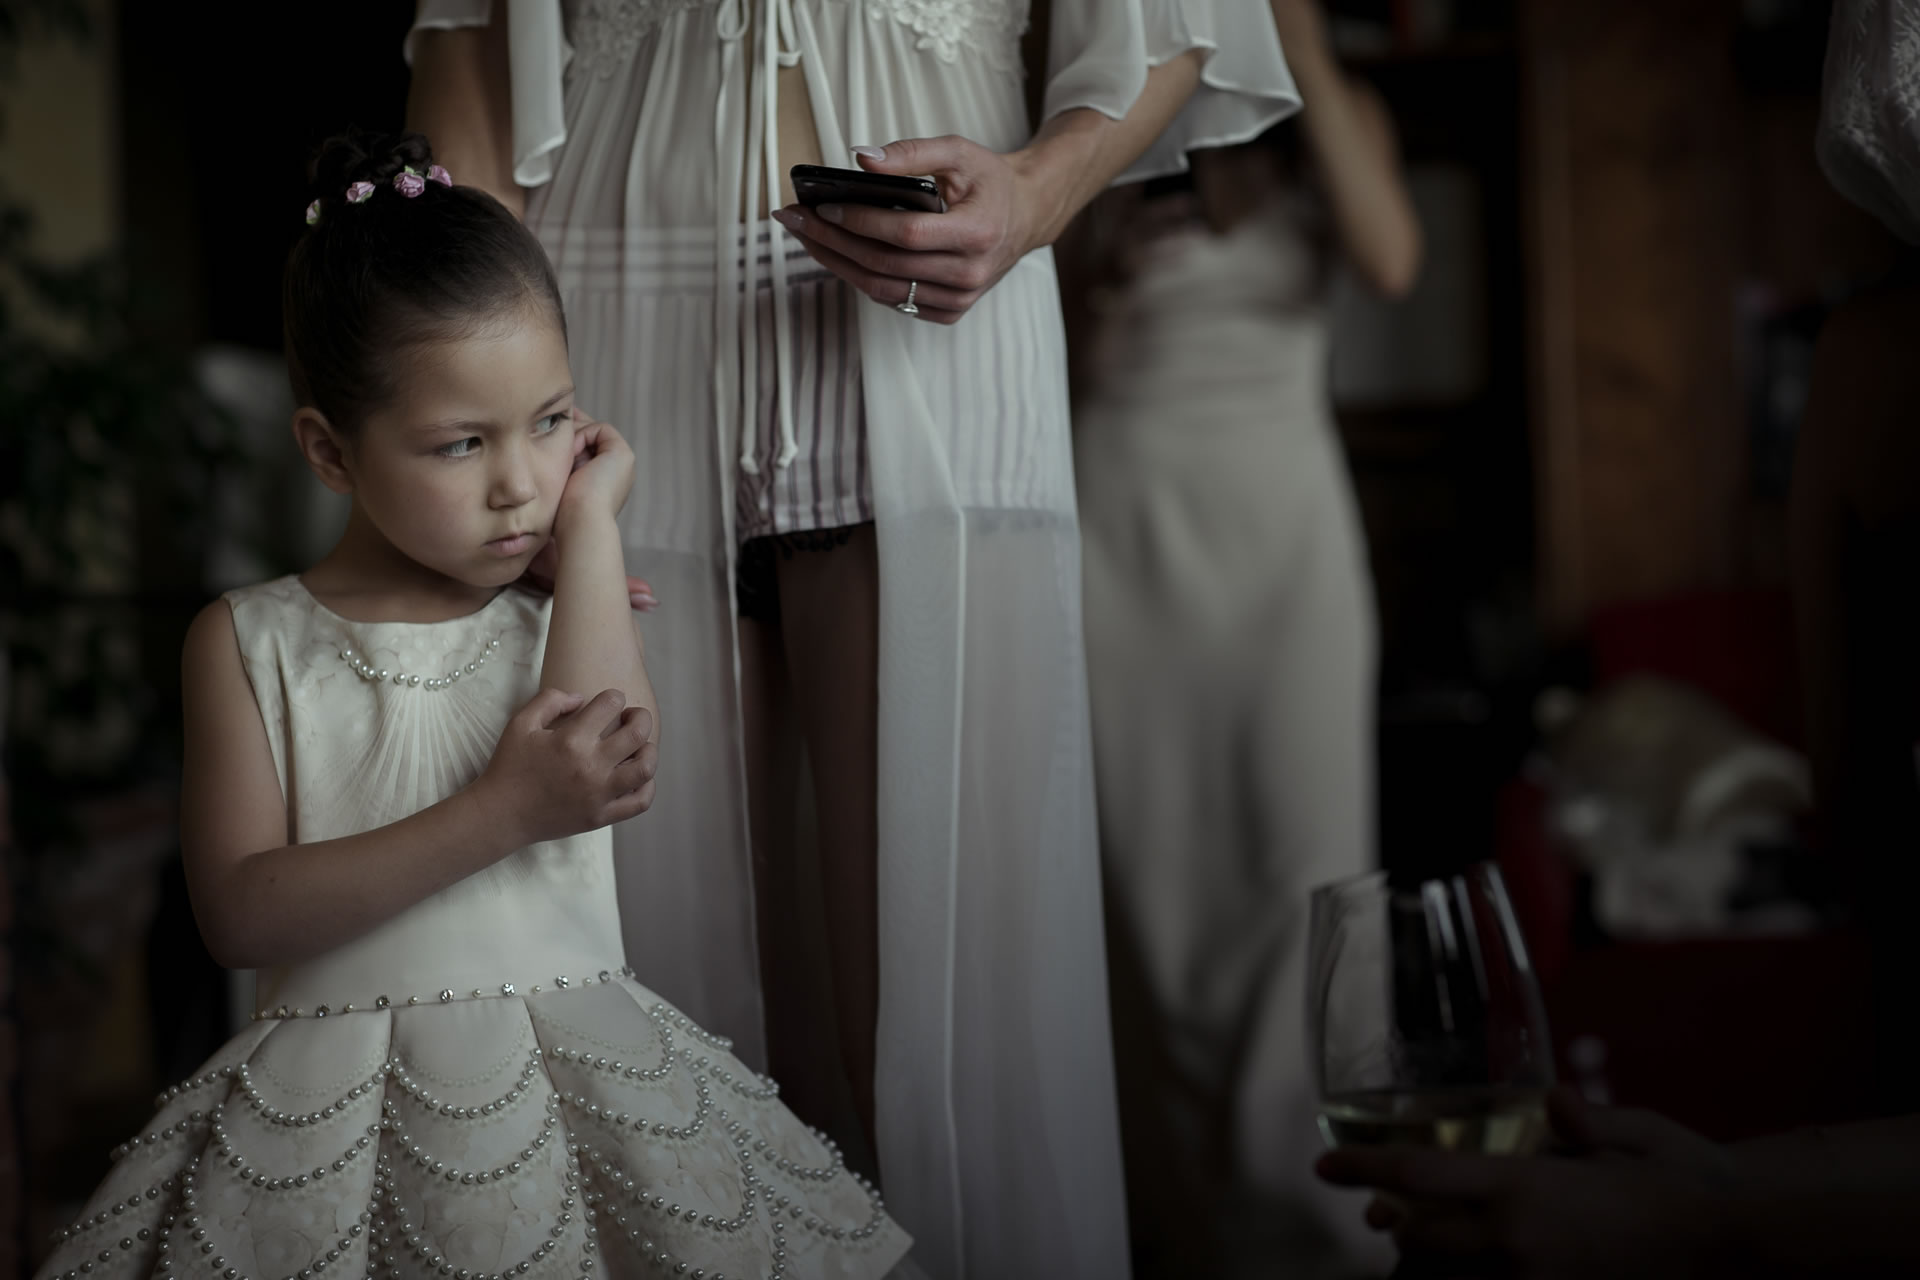 Child - 6 :: Exciting wedding in the countryside of Siena :: Luxury wedding photography - 5 :: Child - 6